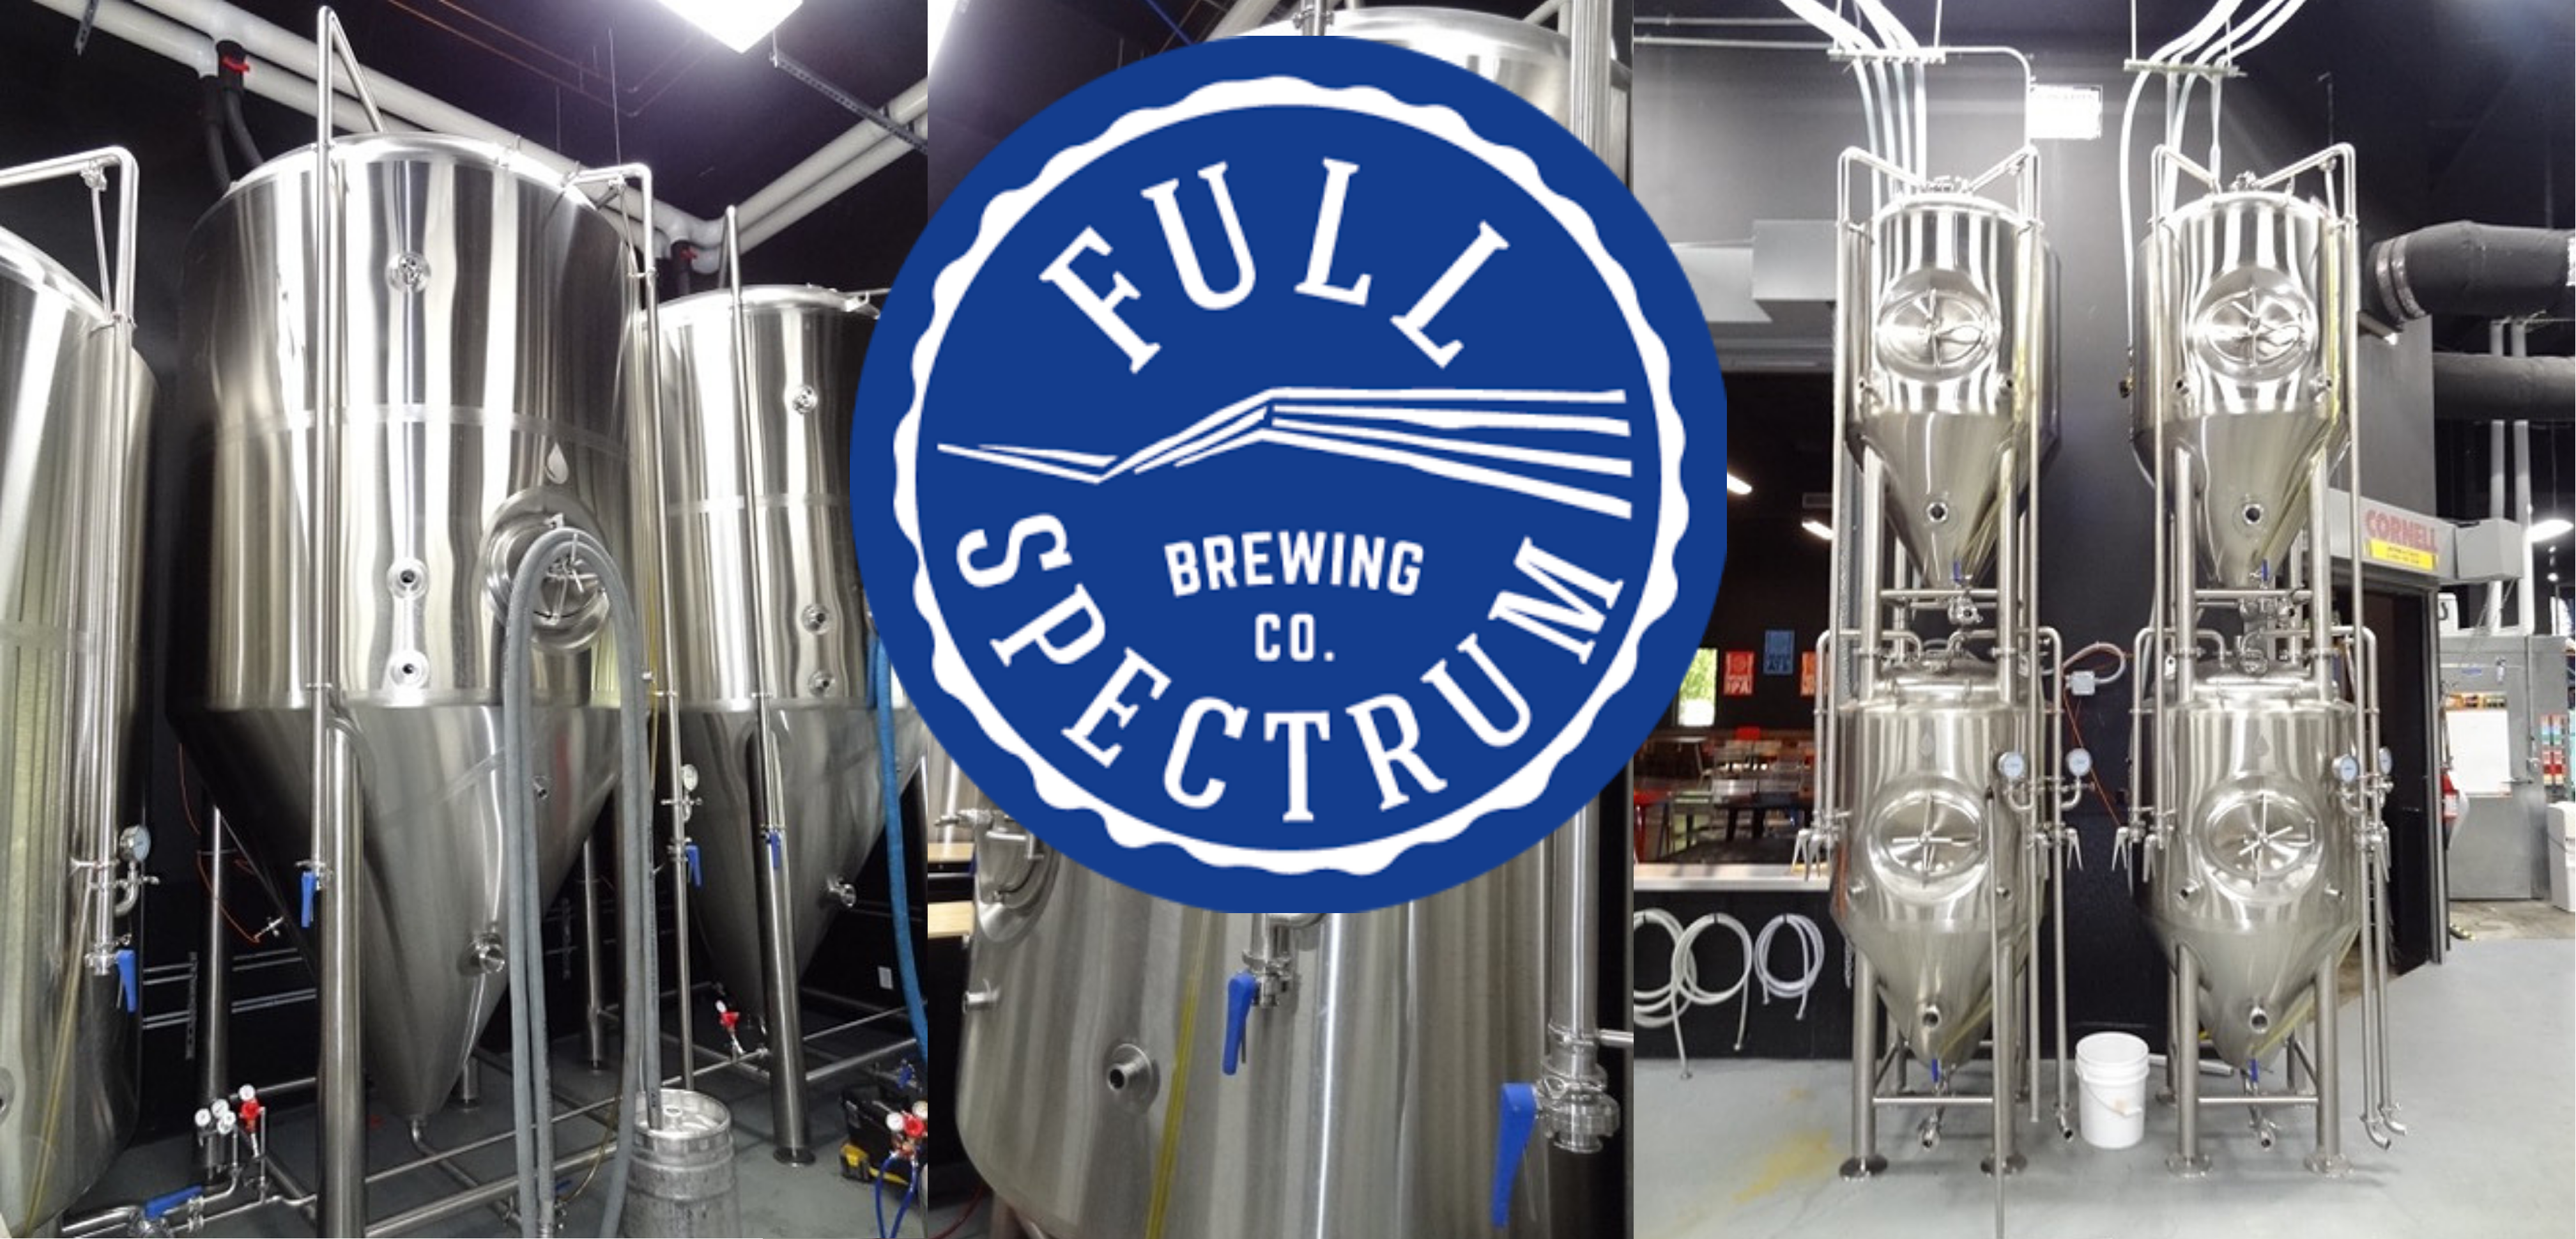 Fort Mill Brewery Closes Doors Auctioning Equipment | New Mill Capital